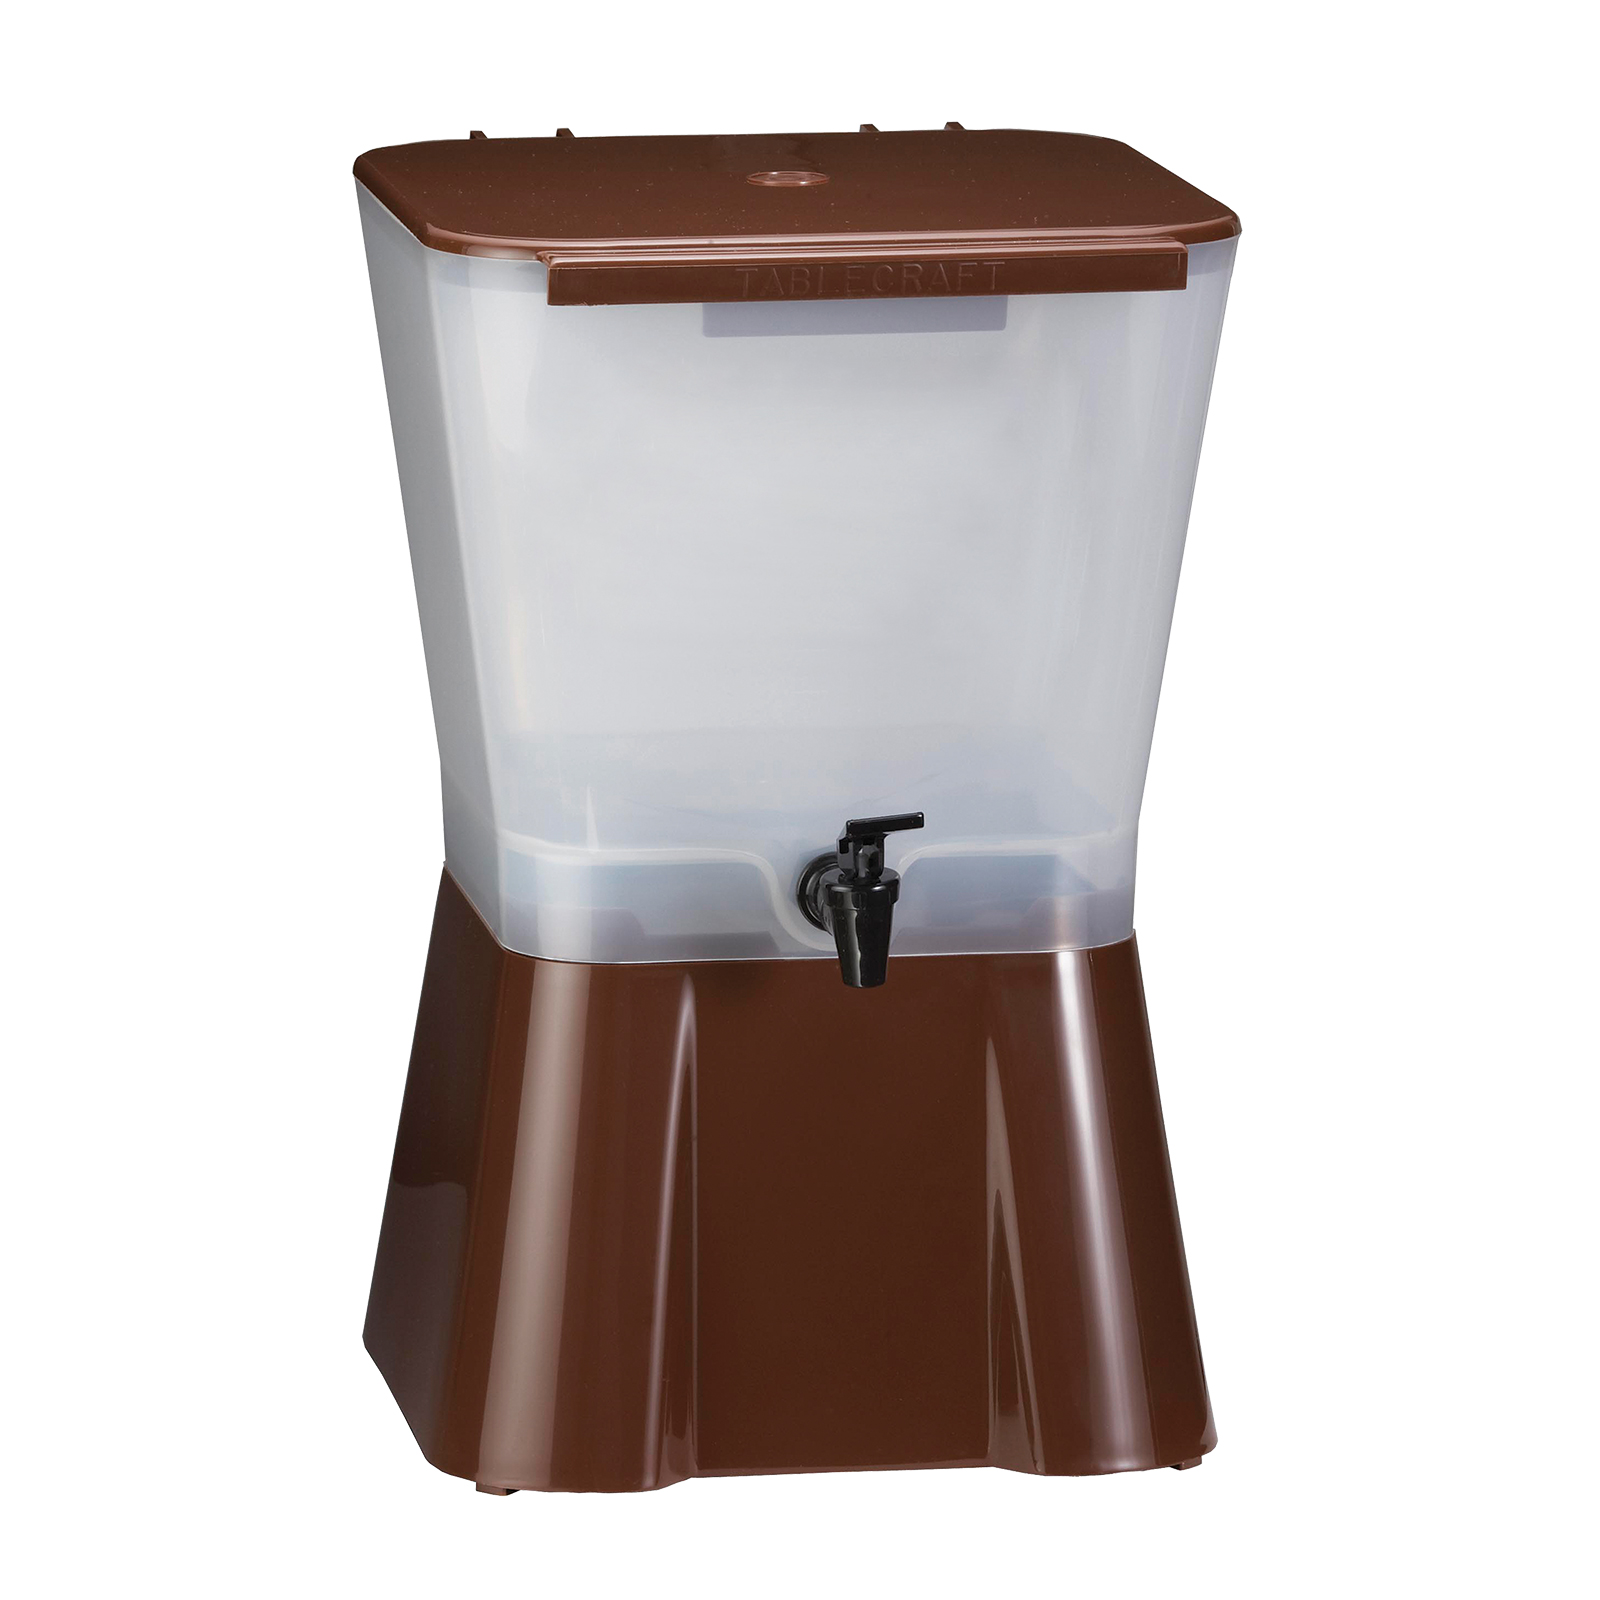 2550-25 TableCraft Products 954 beverage dispenser, non-insulated